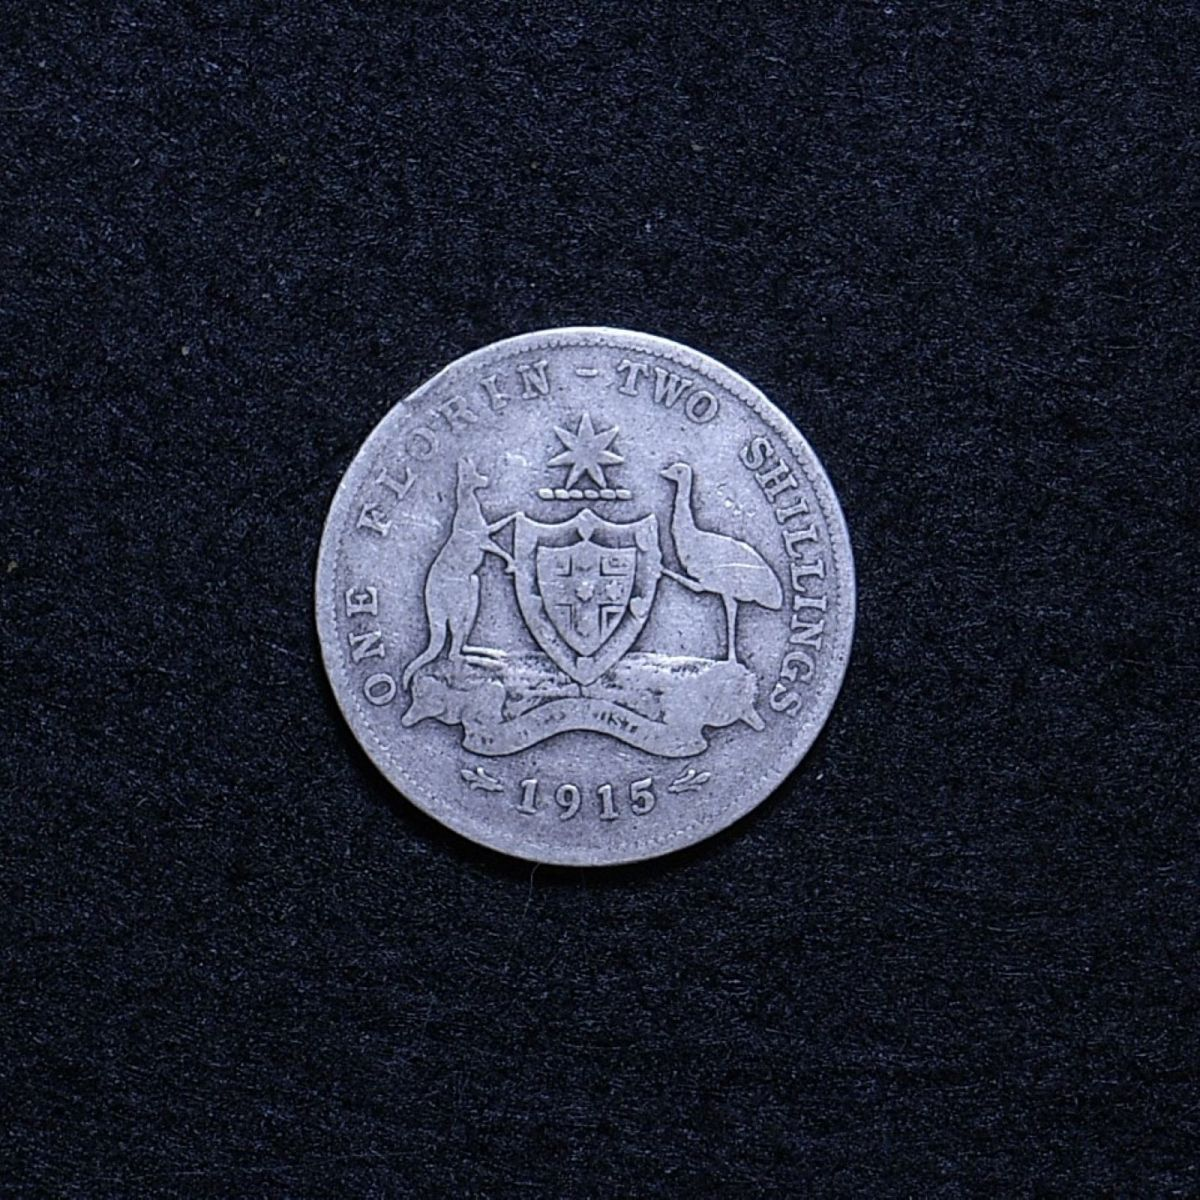 Aus Florin 1915 reverse showing overall appearance